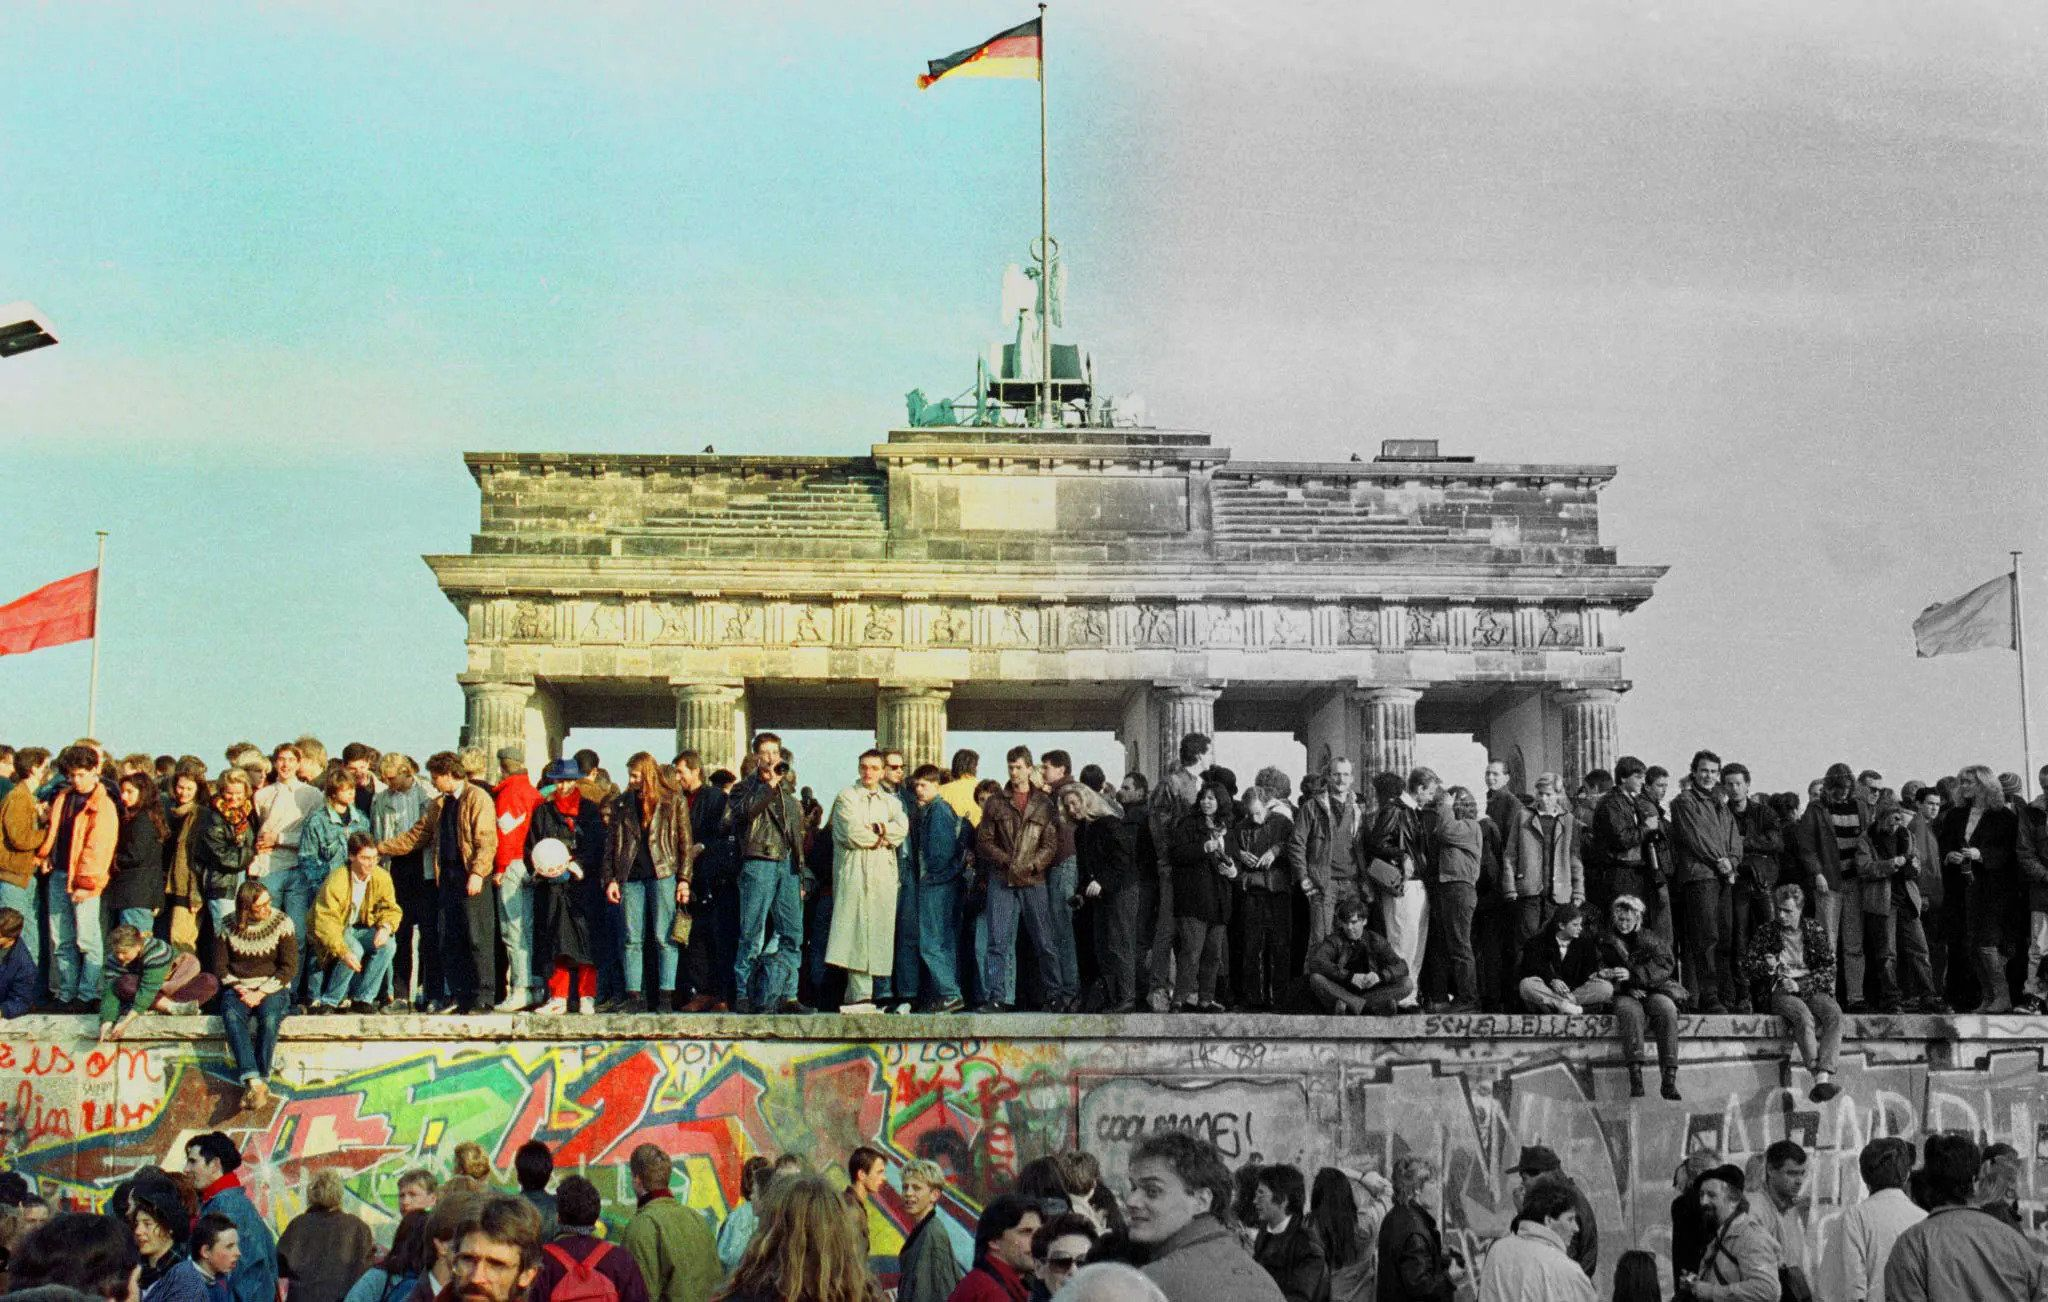 The Brandenburg Gate with a German flag during the period of reunification in Berlin, Germany